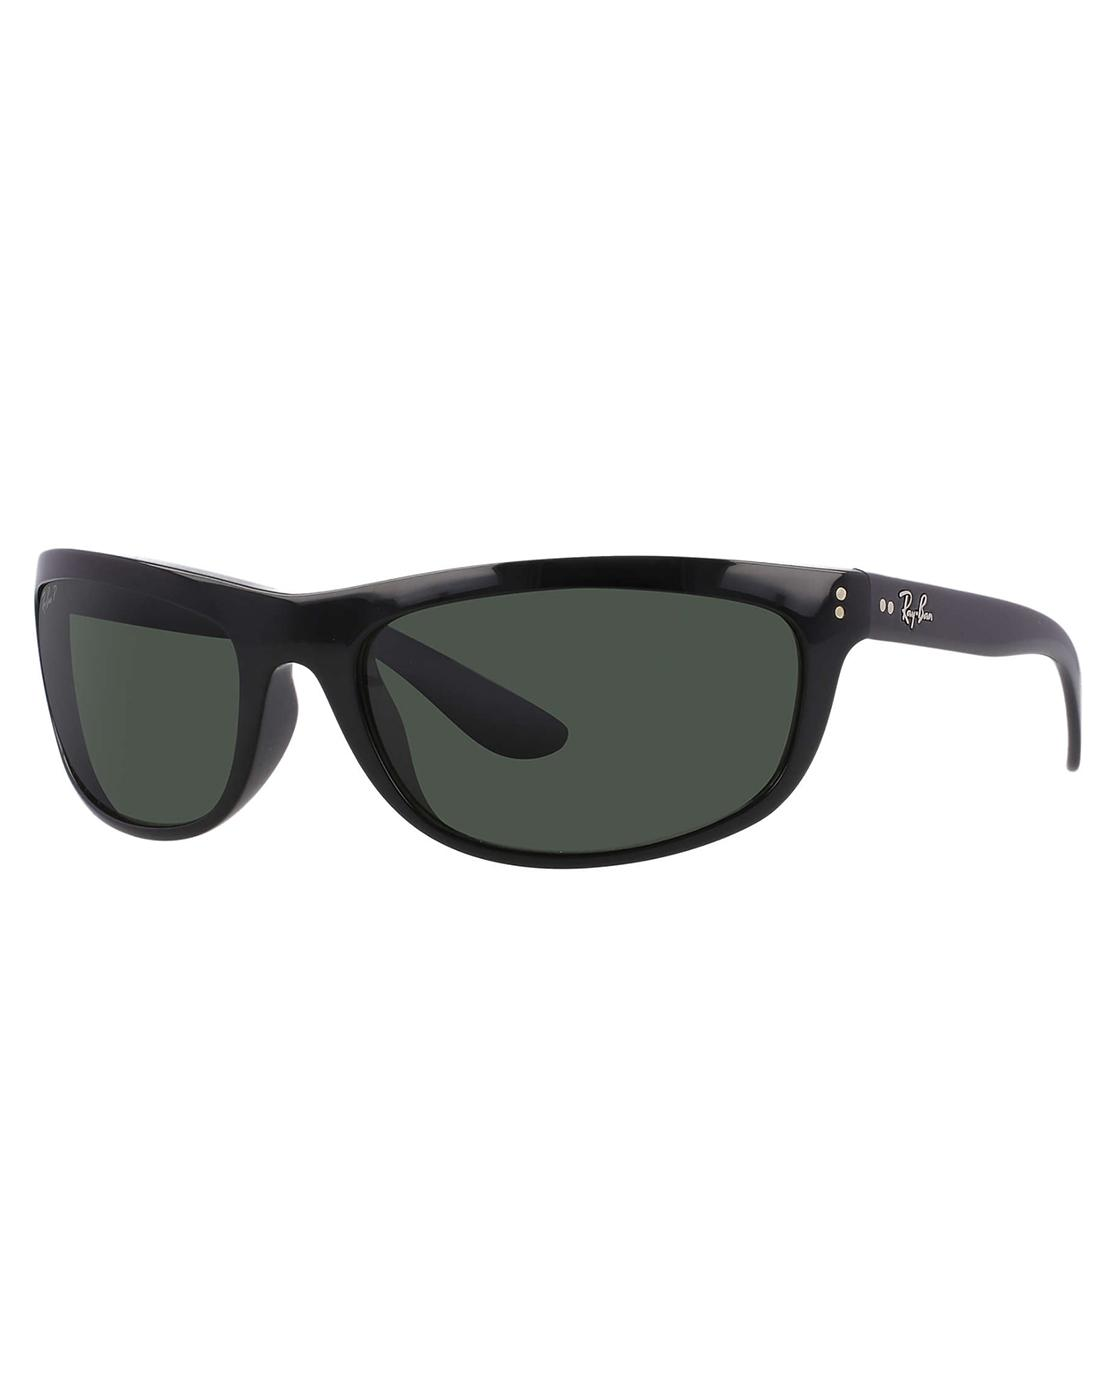 Polarized Balorama Ray-Ban Mens Retro Sunglasses